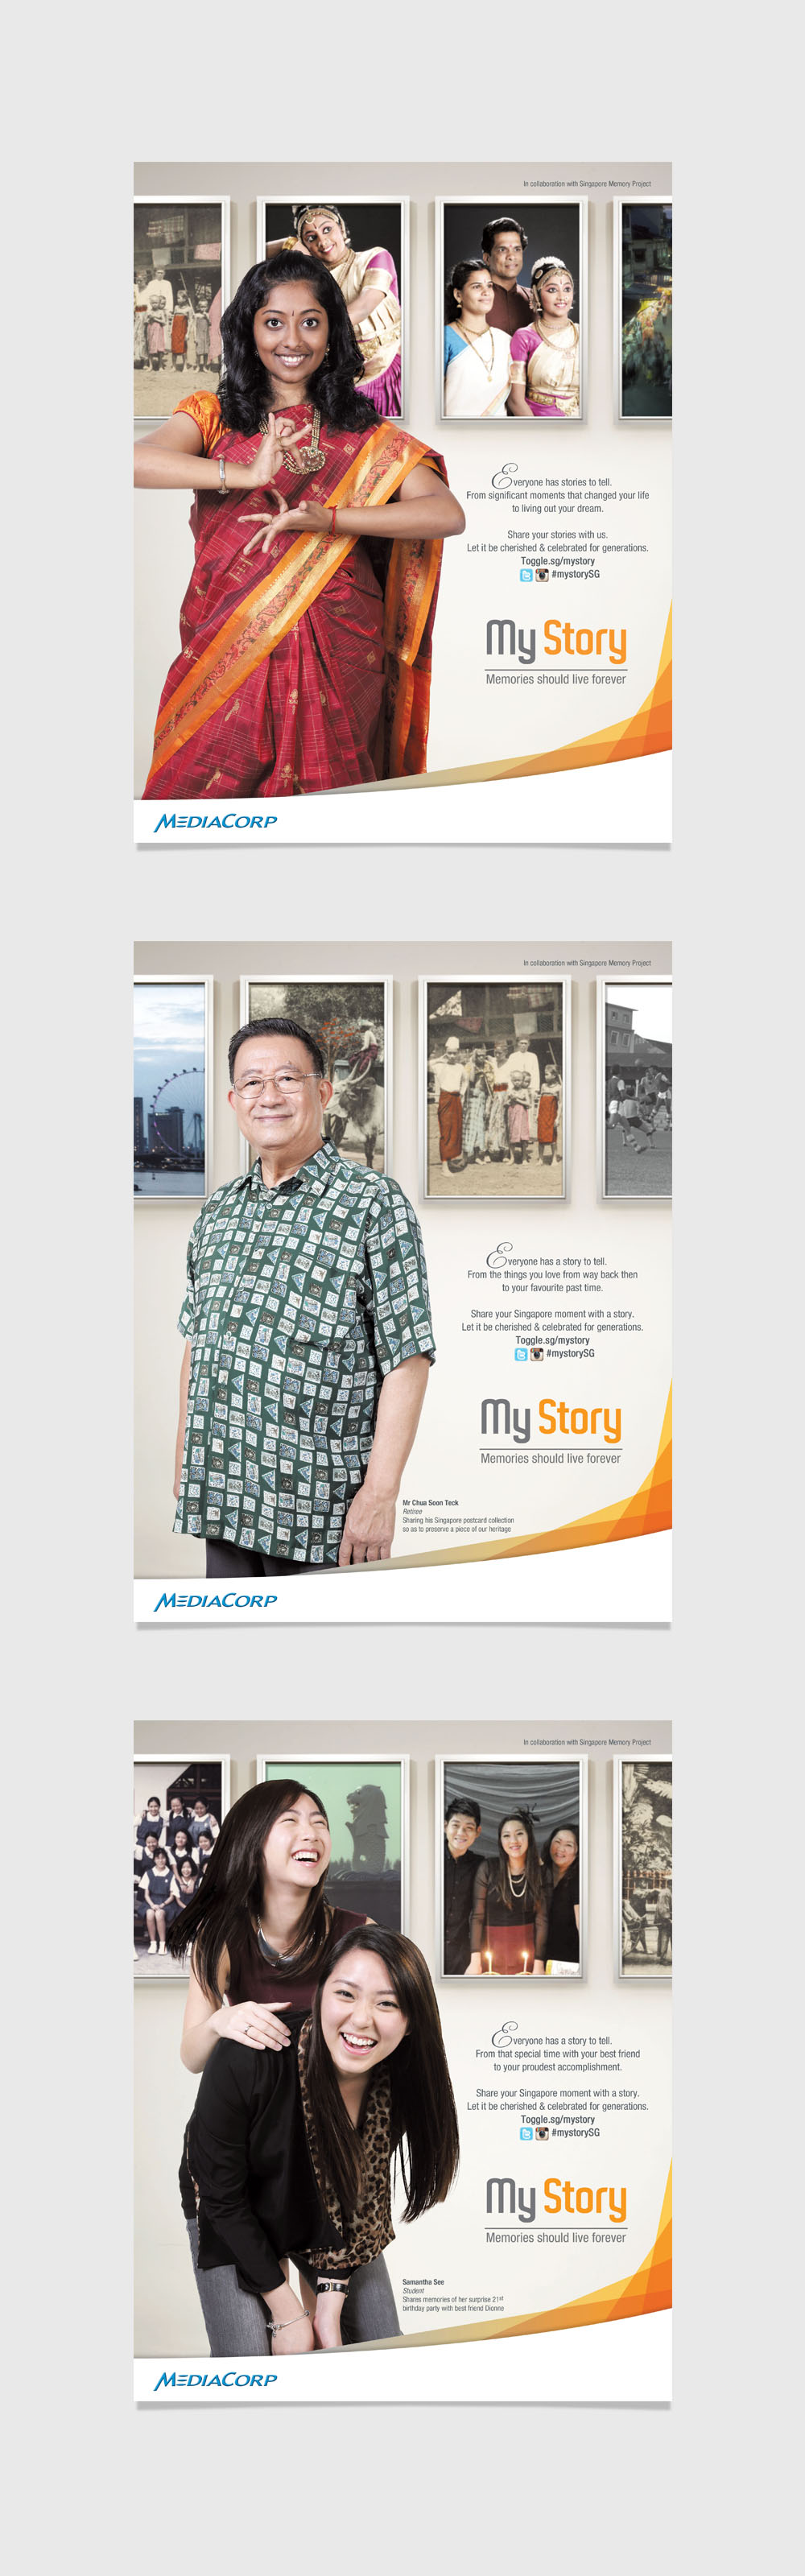 My Story Branding Campaign